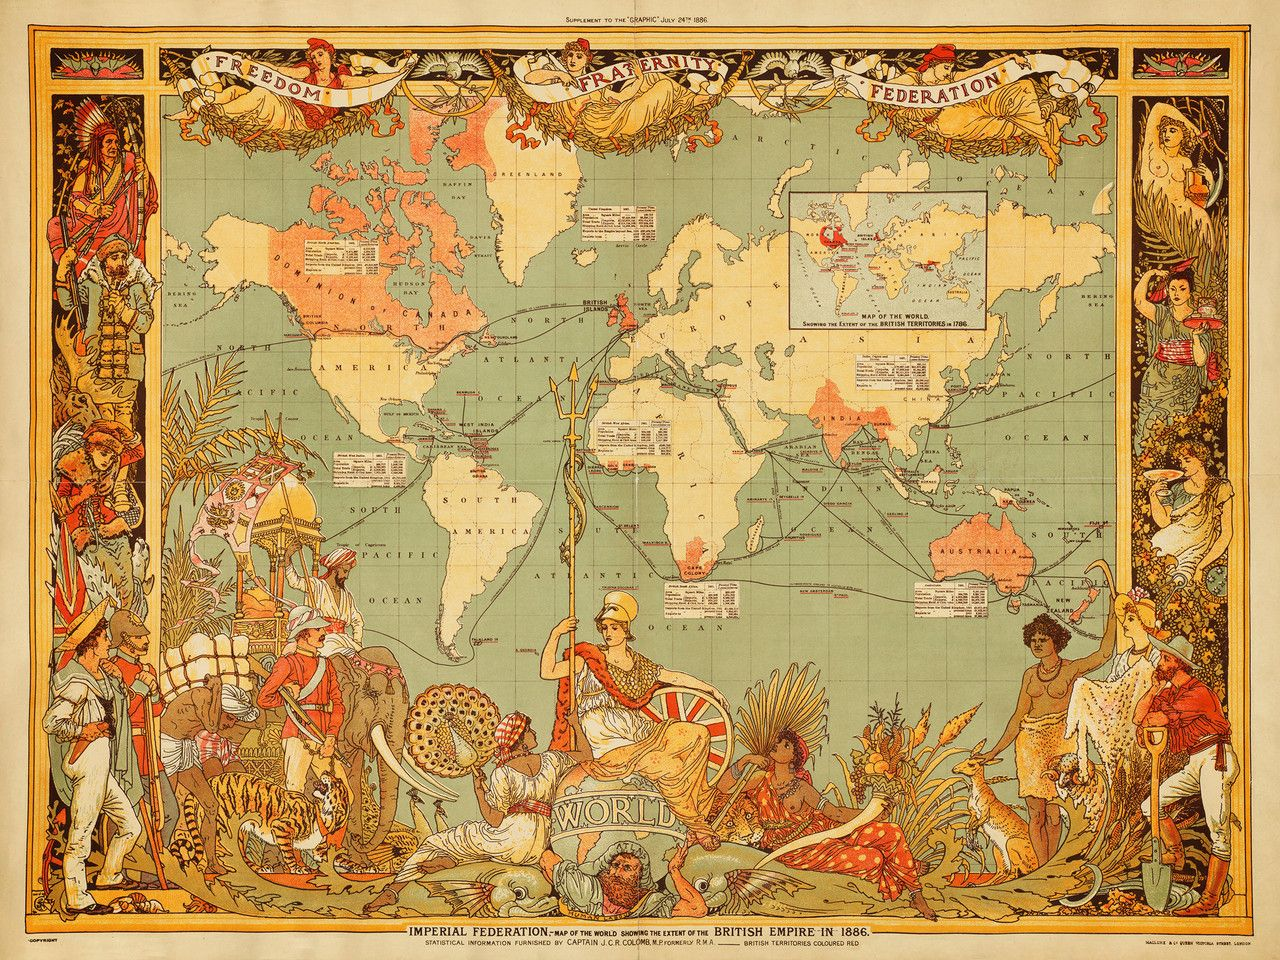 Vintage style world map by walter crane showing the british empire vintage style world map by walter crane showing the british empire in 1700s and 1800s gumiabroncs Gallery